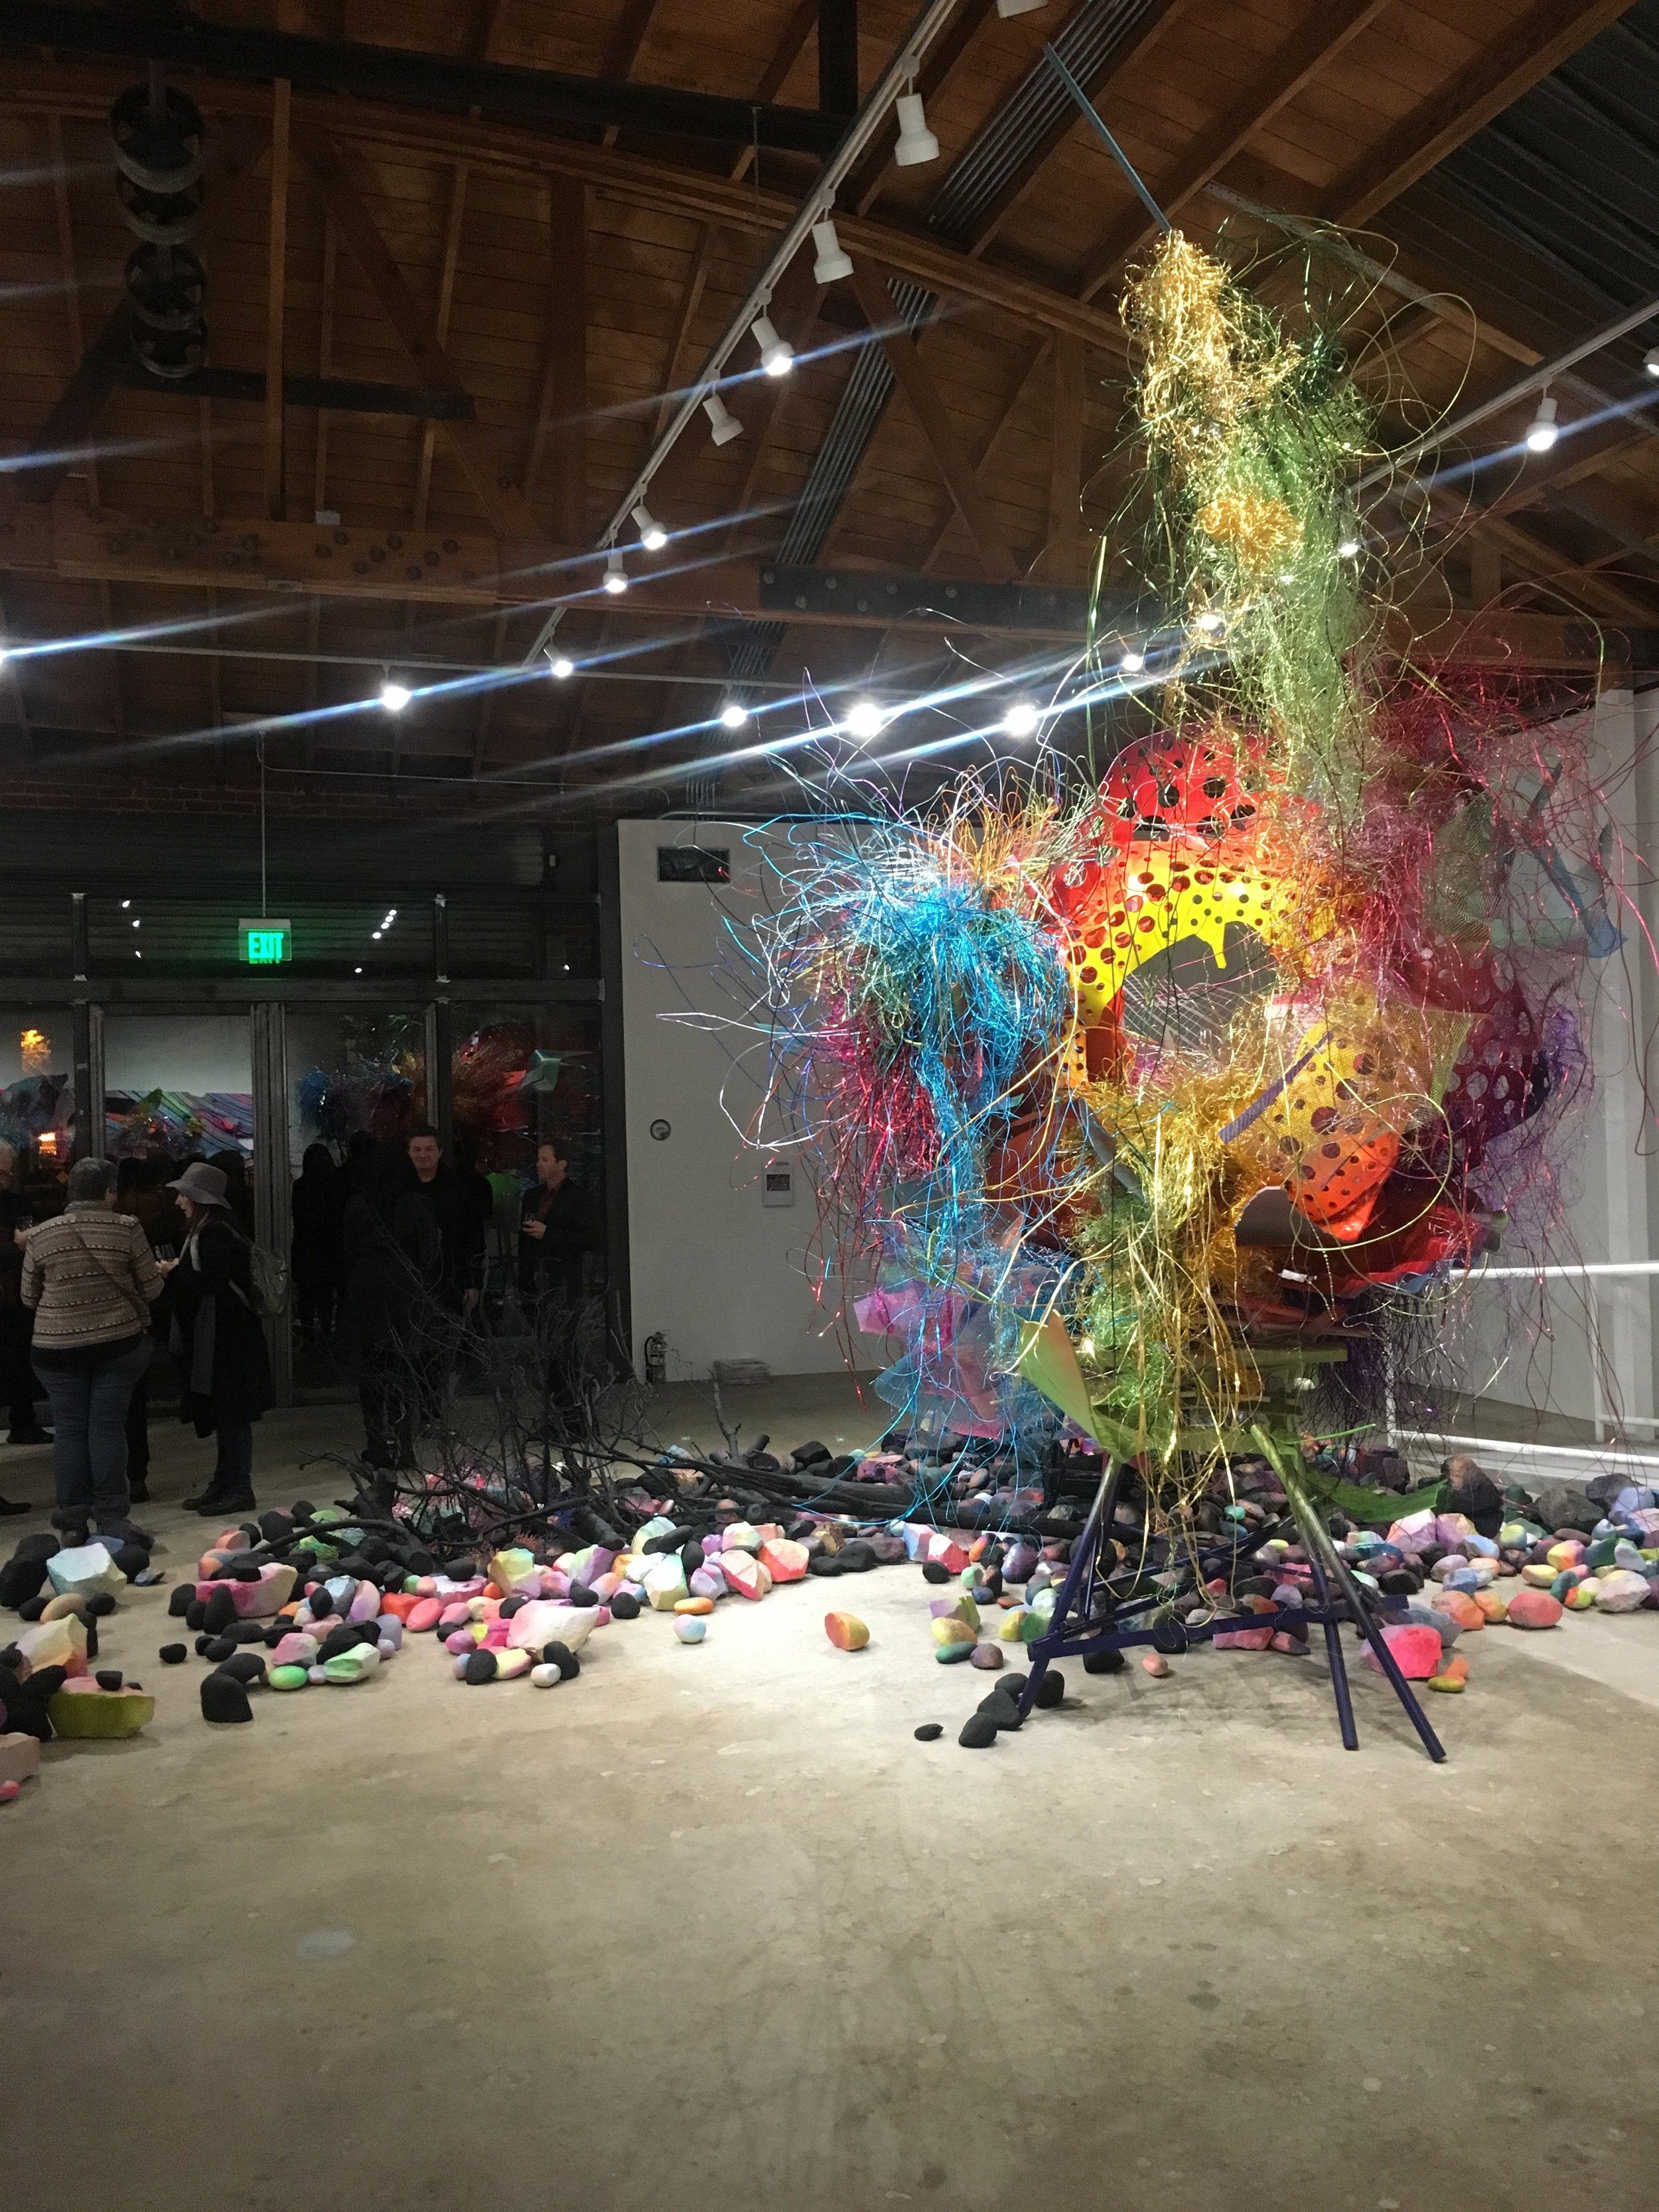 The installations were terrific, ornate messes of colorful materials.